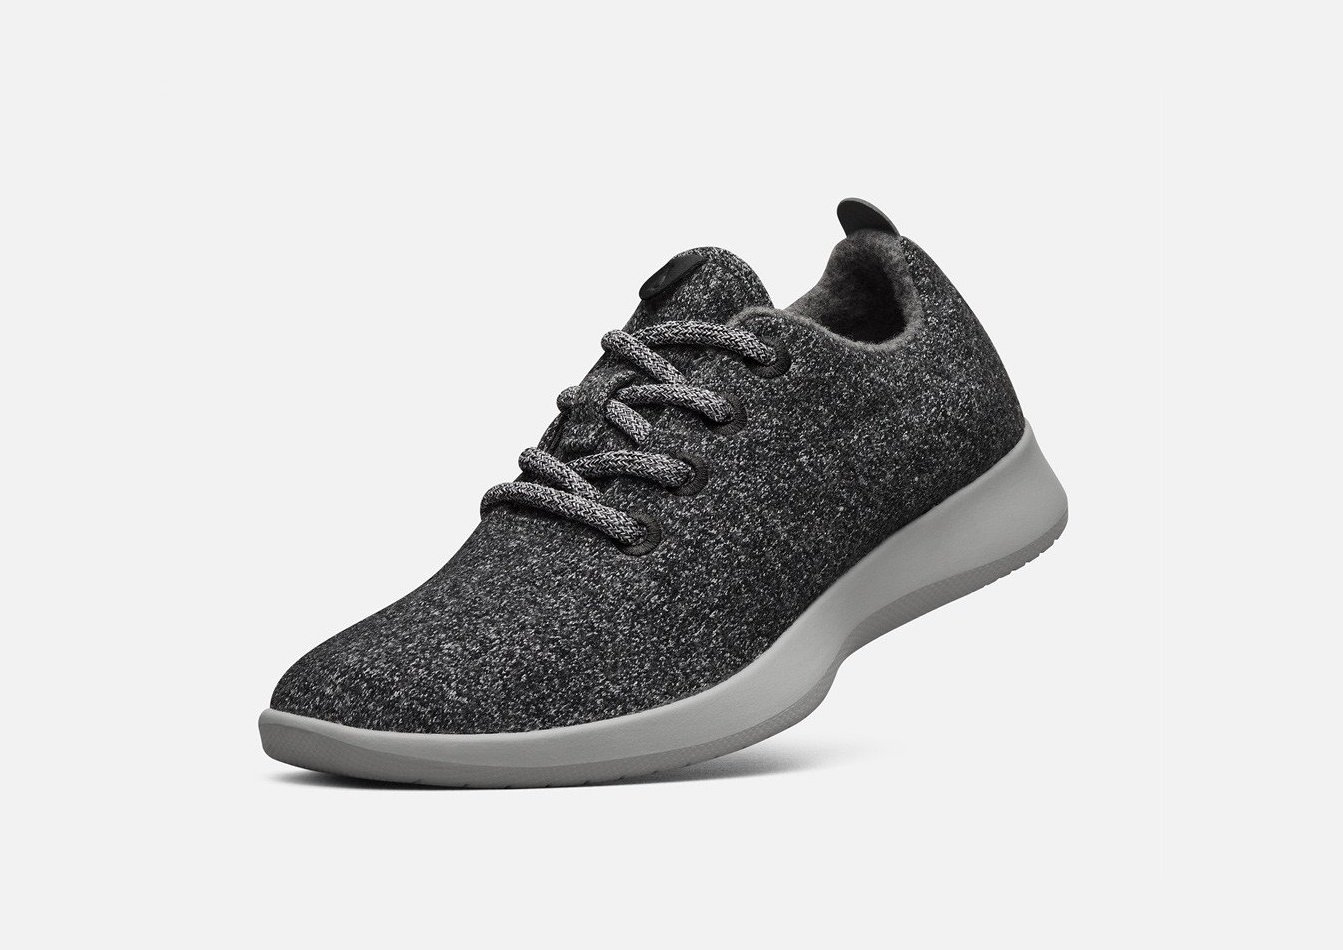 AllBirds-WR2MNCW-MensWoolRunners_Natural_Grey-Front_Angle_0935528d-45d5-41d9-abae-ef14ca63cbcd